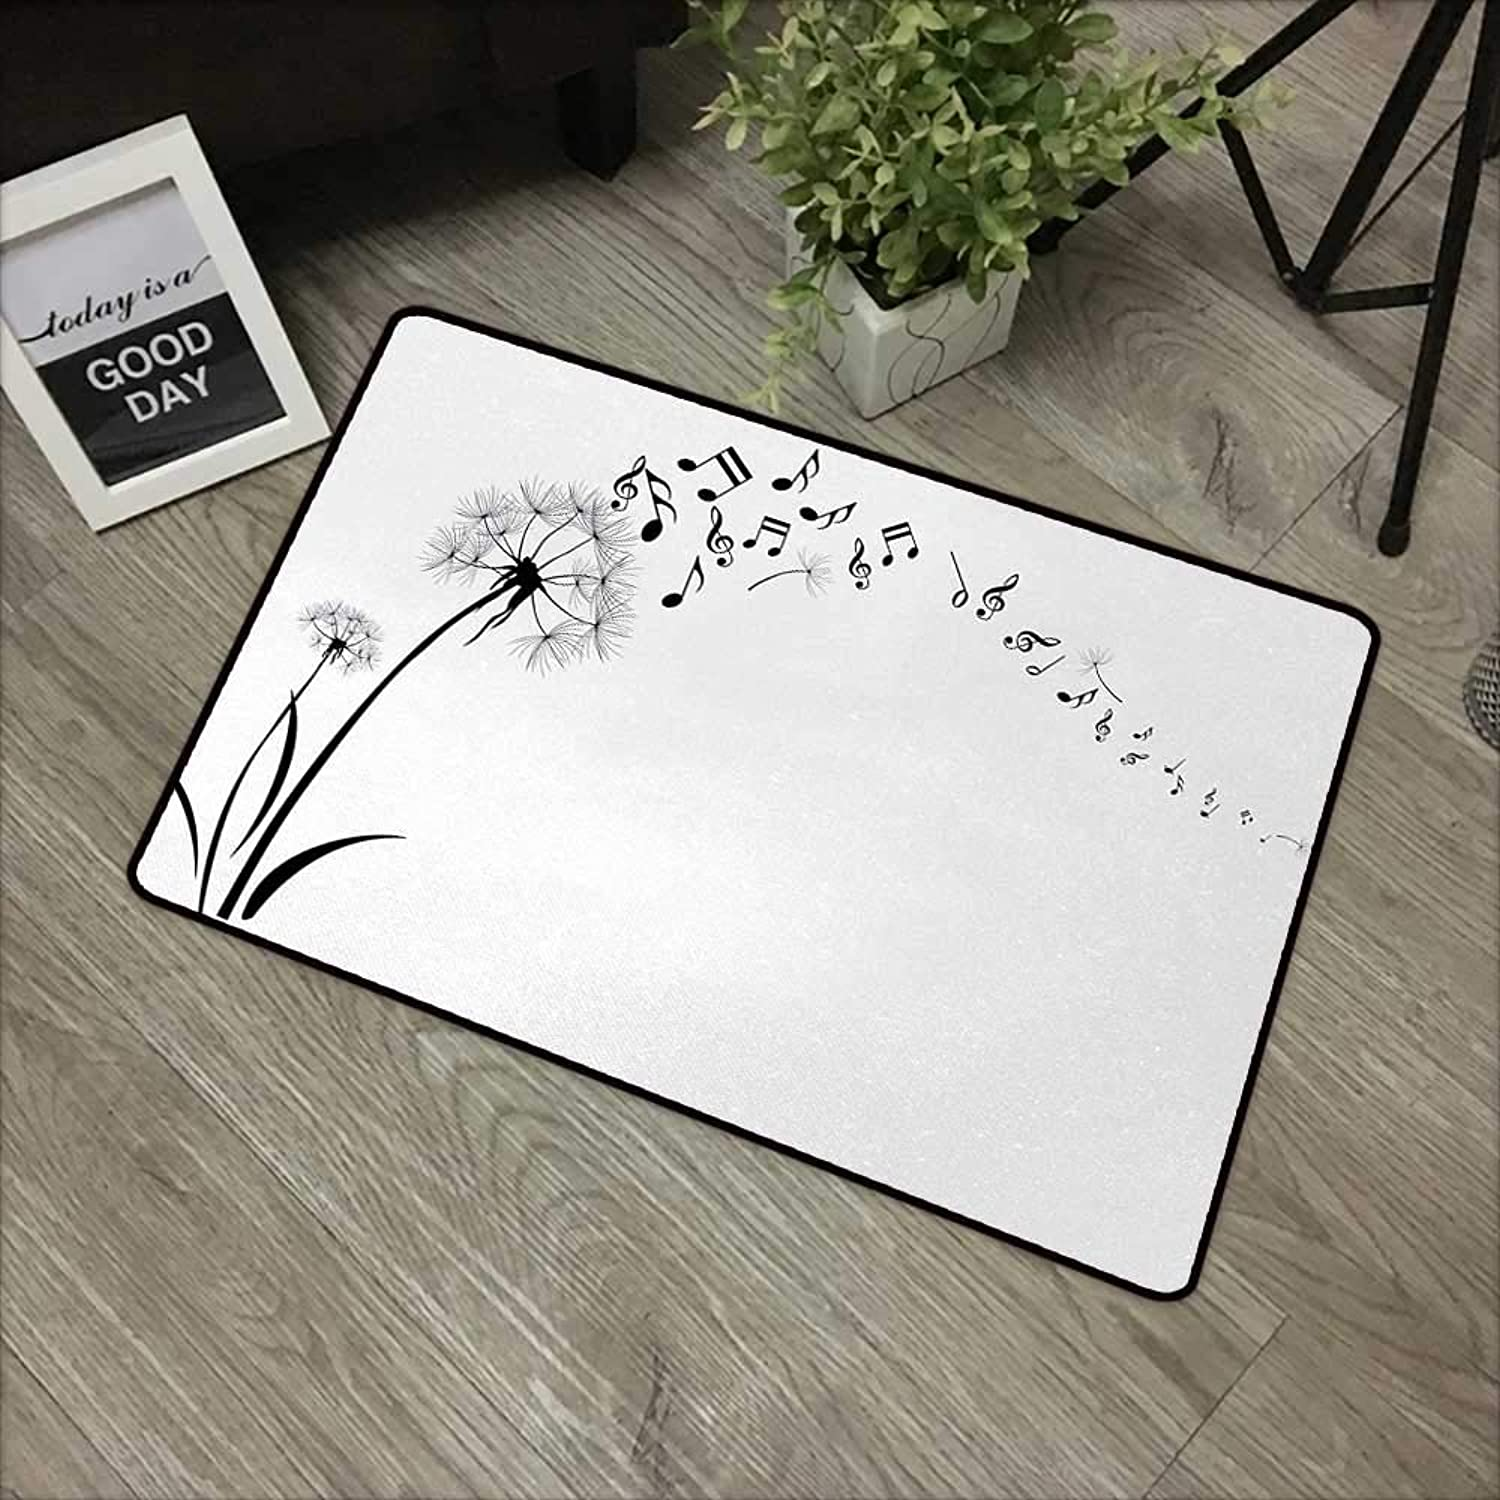 Bedroom Door mat W35 x L59 INCH Music,Flying Dandelions with Note Music Summer Meadow Silhouette Softness Simple,Black White Non-Slip, with Non-Slip Backing,Non-Slip Door Mat Carpet